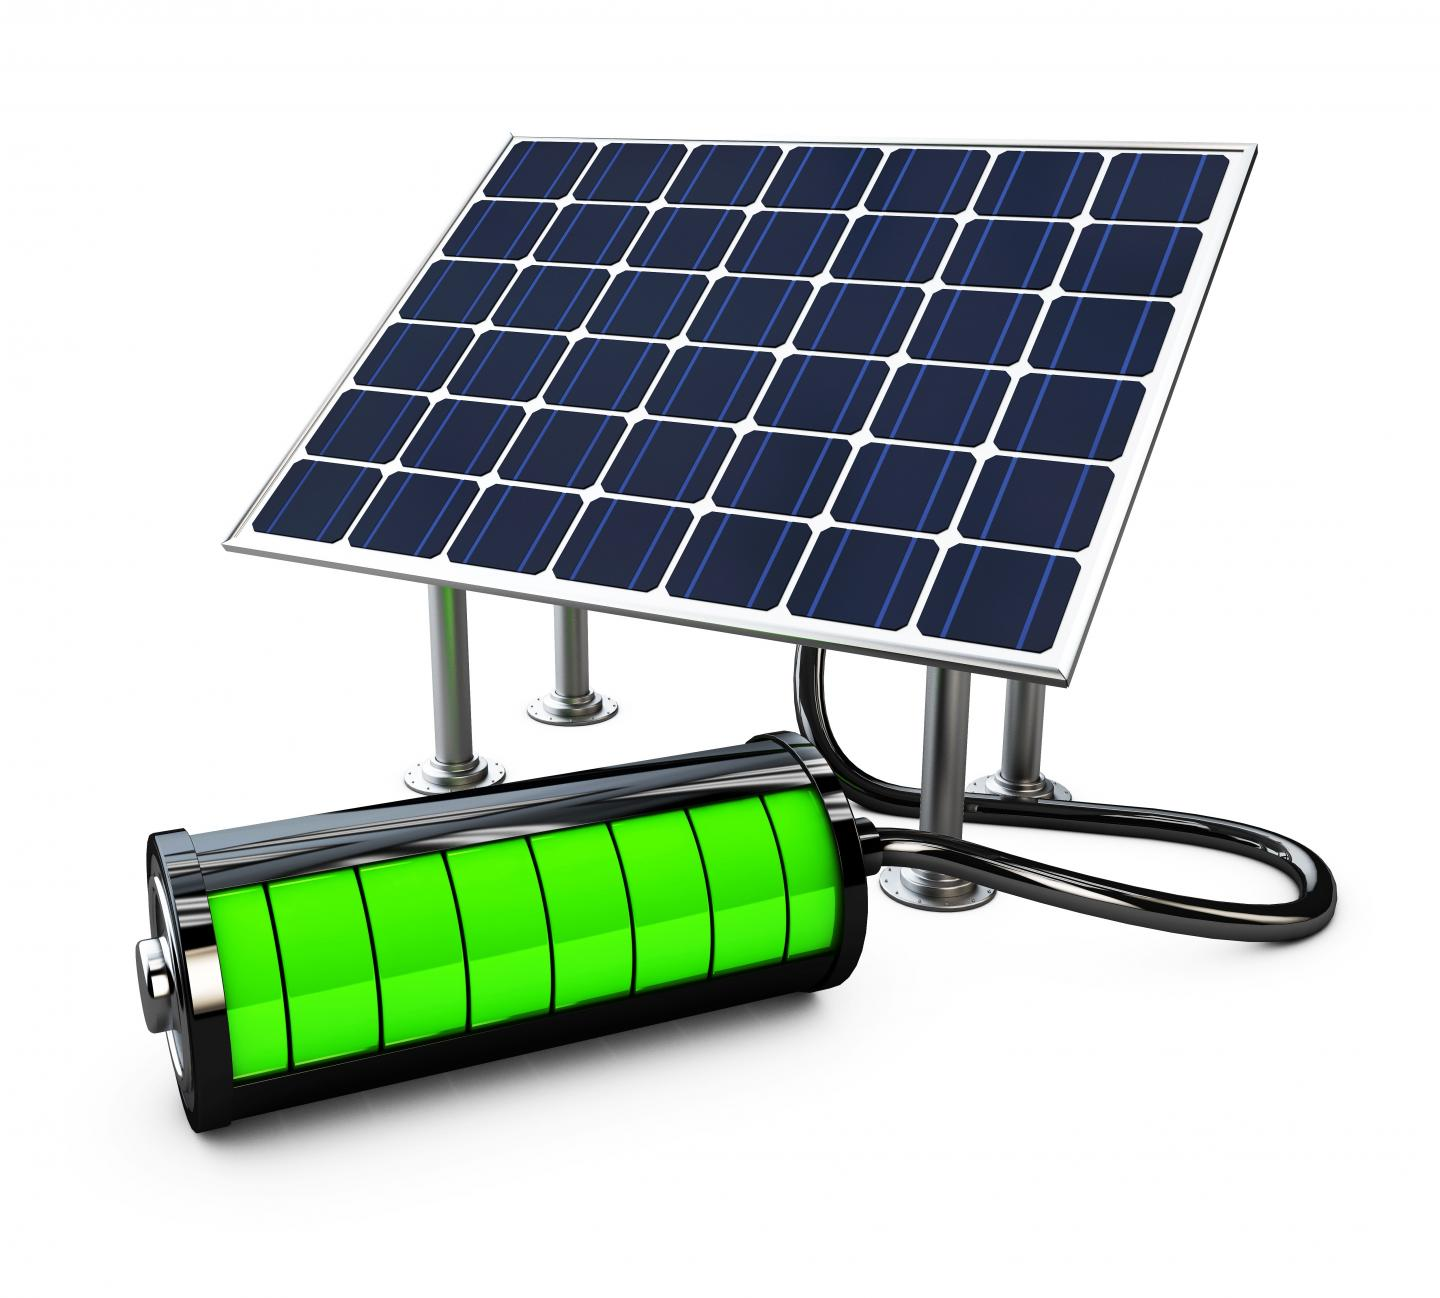 How Efficient Are Solar Power Storage Systems?